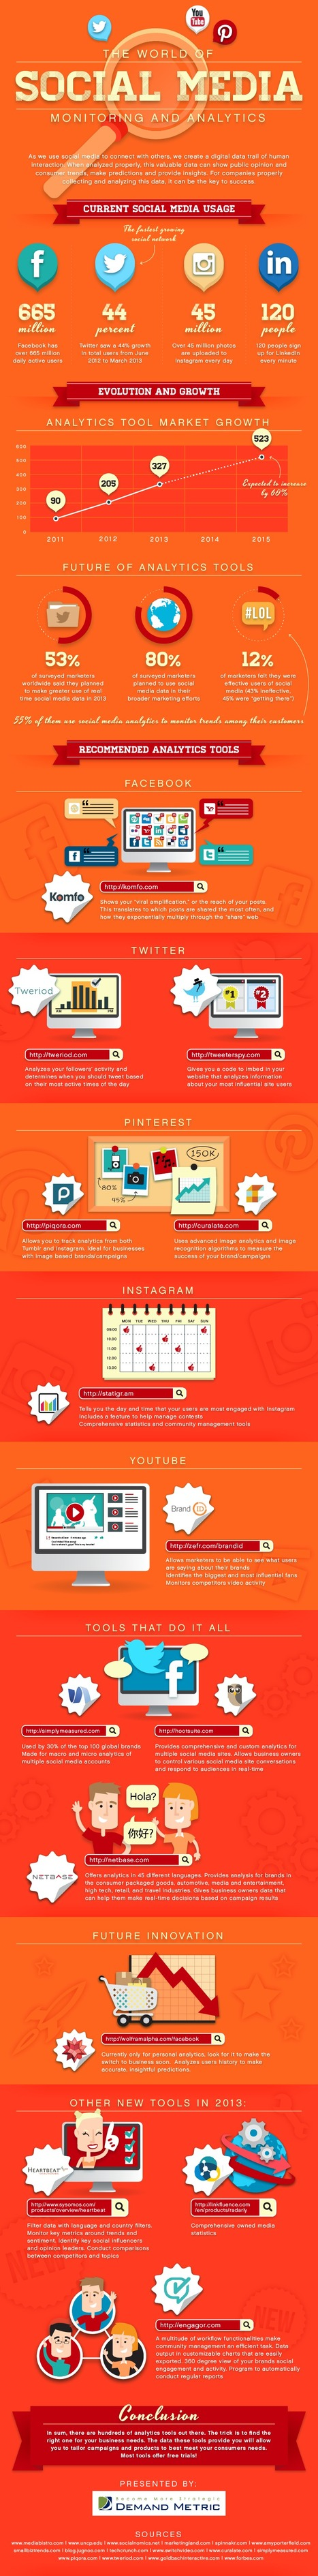 The World Of Social Media Monitoring And Analytics [INFOGRAPHIC] - AllTwitter | Les Médias Sociaux pour l'entreprise | Scoop.it